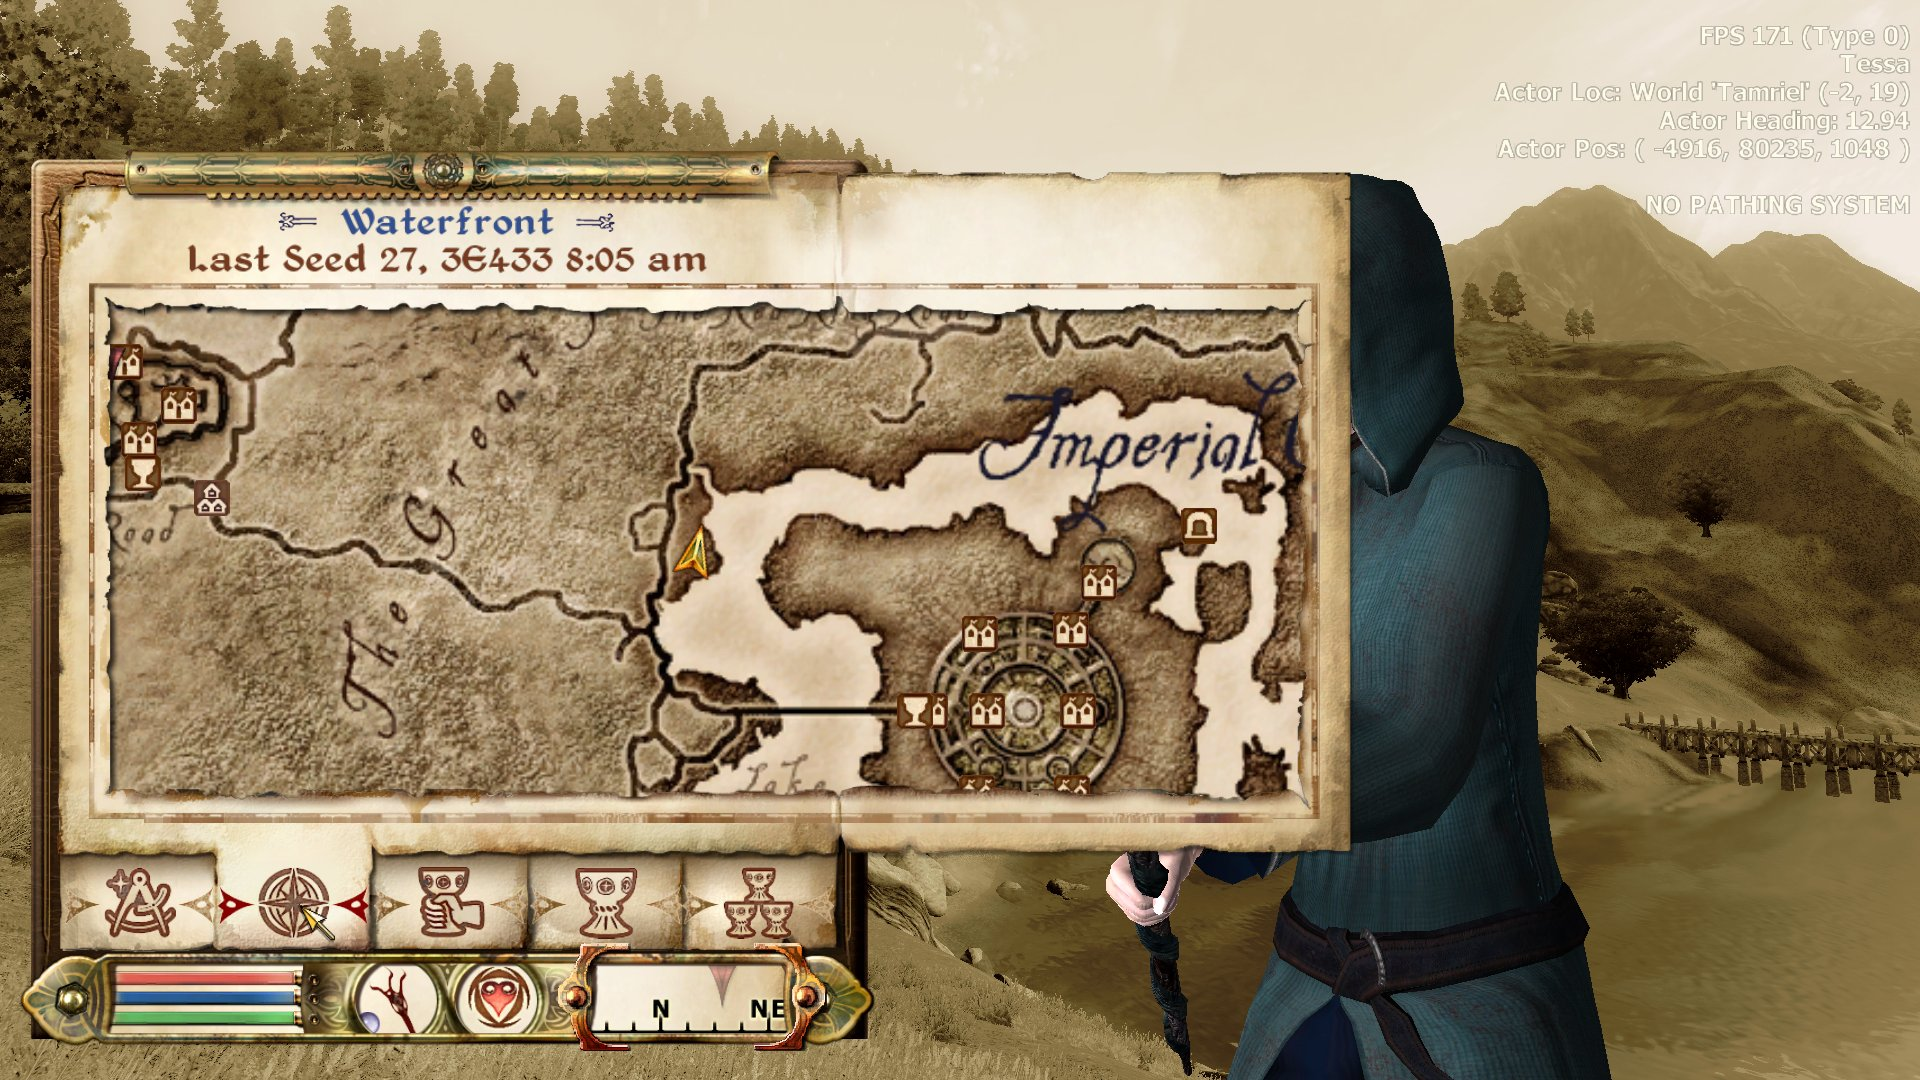 elder scrolls map, forza 2 map, thief 4 map, dragon mountain map, morrowind map, kingdoms of amalur map, tales of vesperia map, divinity ii map, the lego movie map, fable 2 map, knights of the nine map, far cry 2 map, the hunger games map, snowpiercer map, daggerfall map, fortress map, skyrim map, dark skies map, the reckoning map, on map used in oblivion